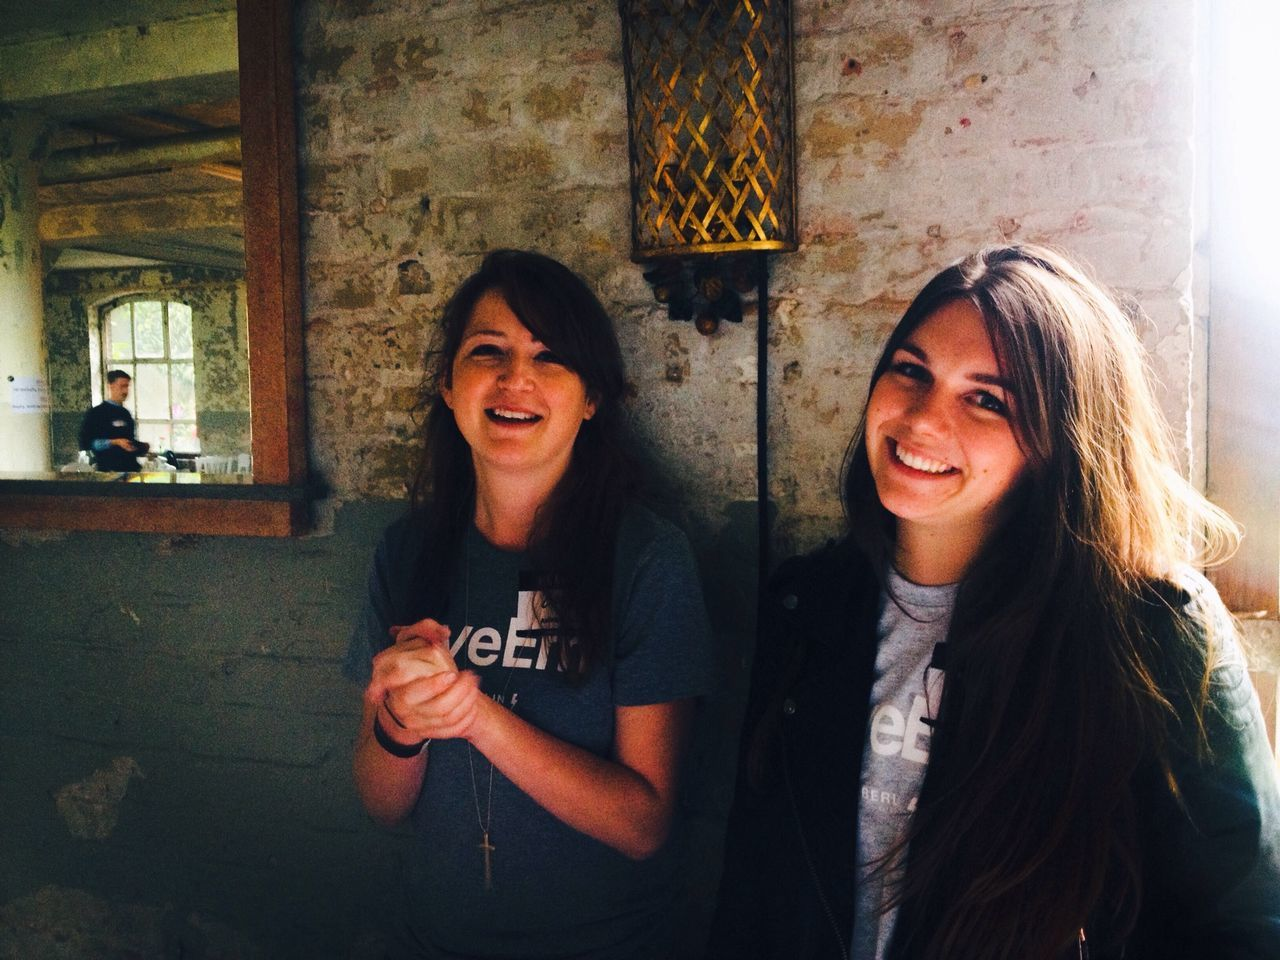 Portrait of friends smiling while standing against wall